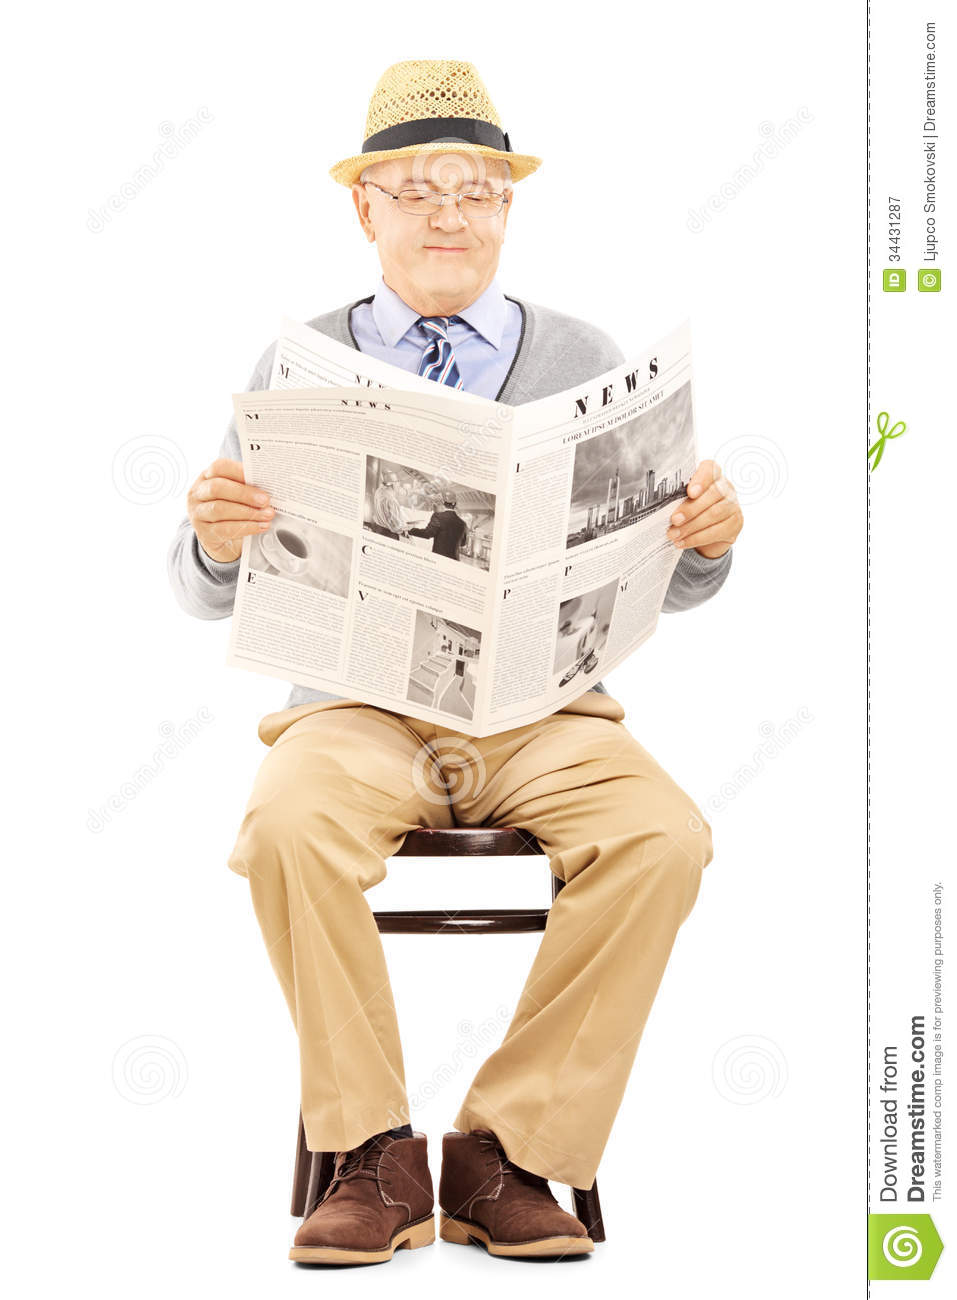 ... newspaper and sitting on a wooden chair isolated on white background